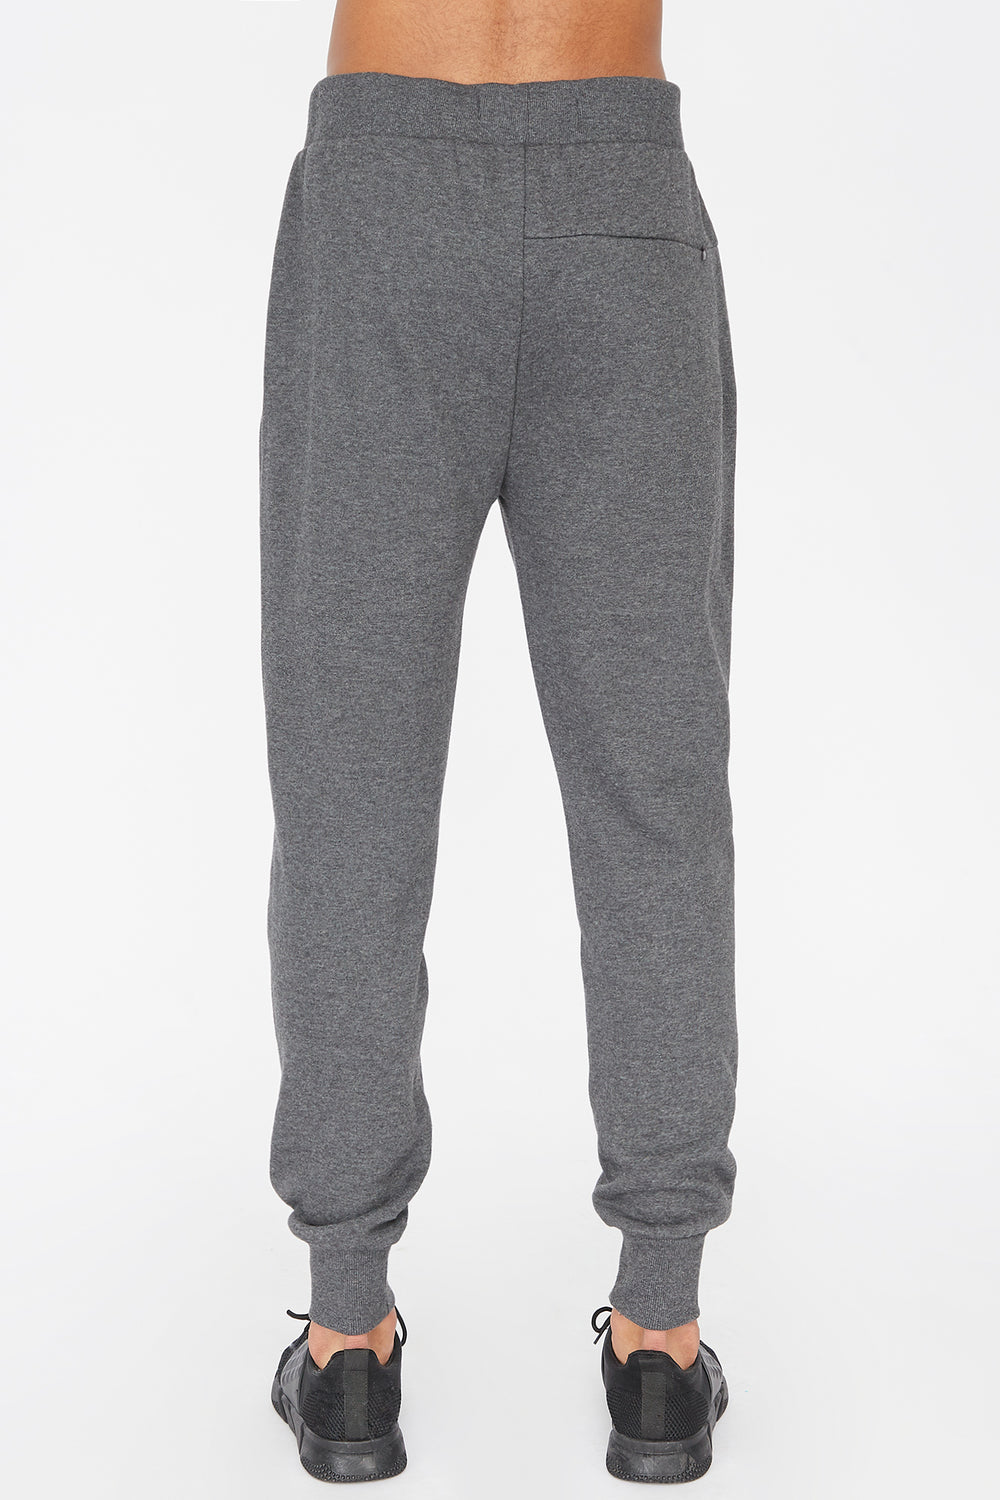 West49 Mens Solid Moto Jogger Charcoal